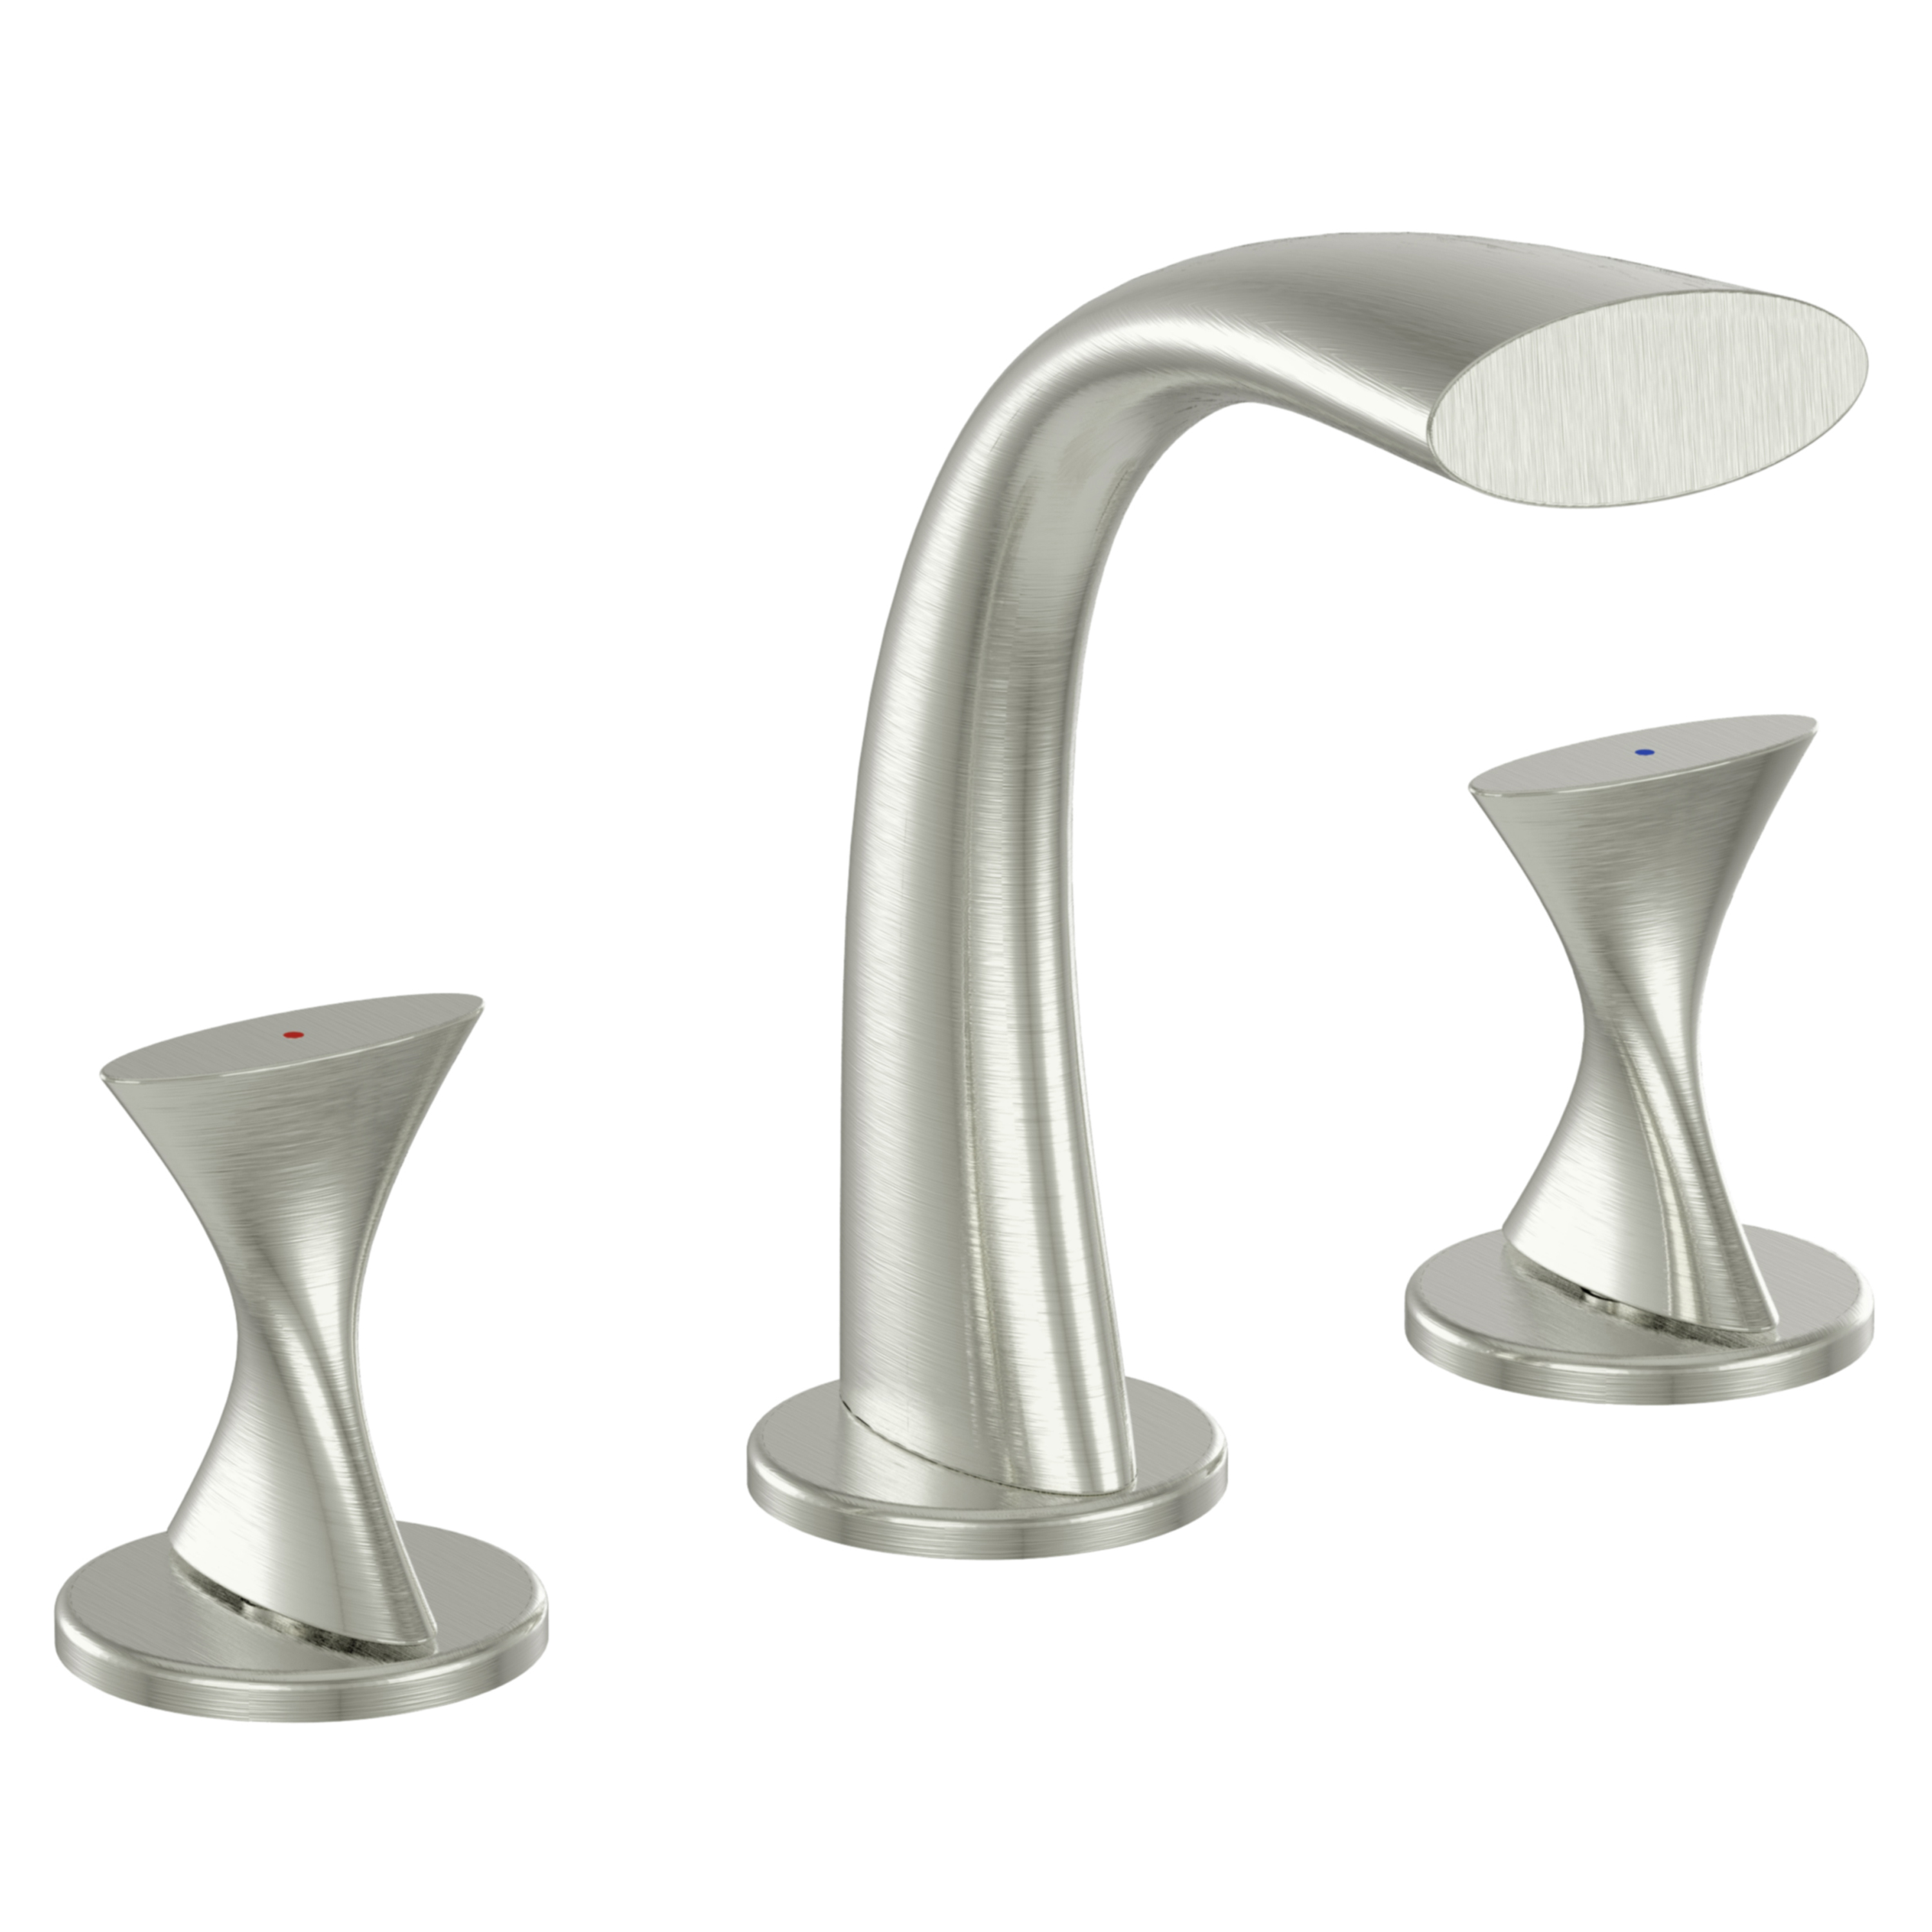 widespread kitchen faucet chandeliers twist collection lavatory  ultra faucets